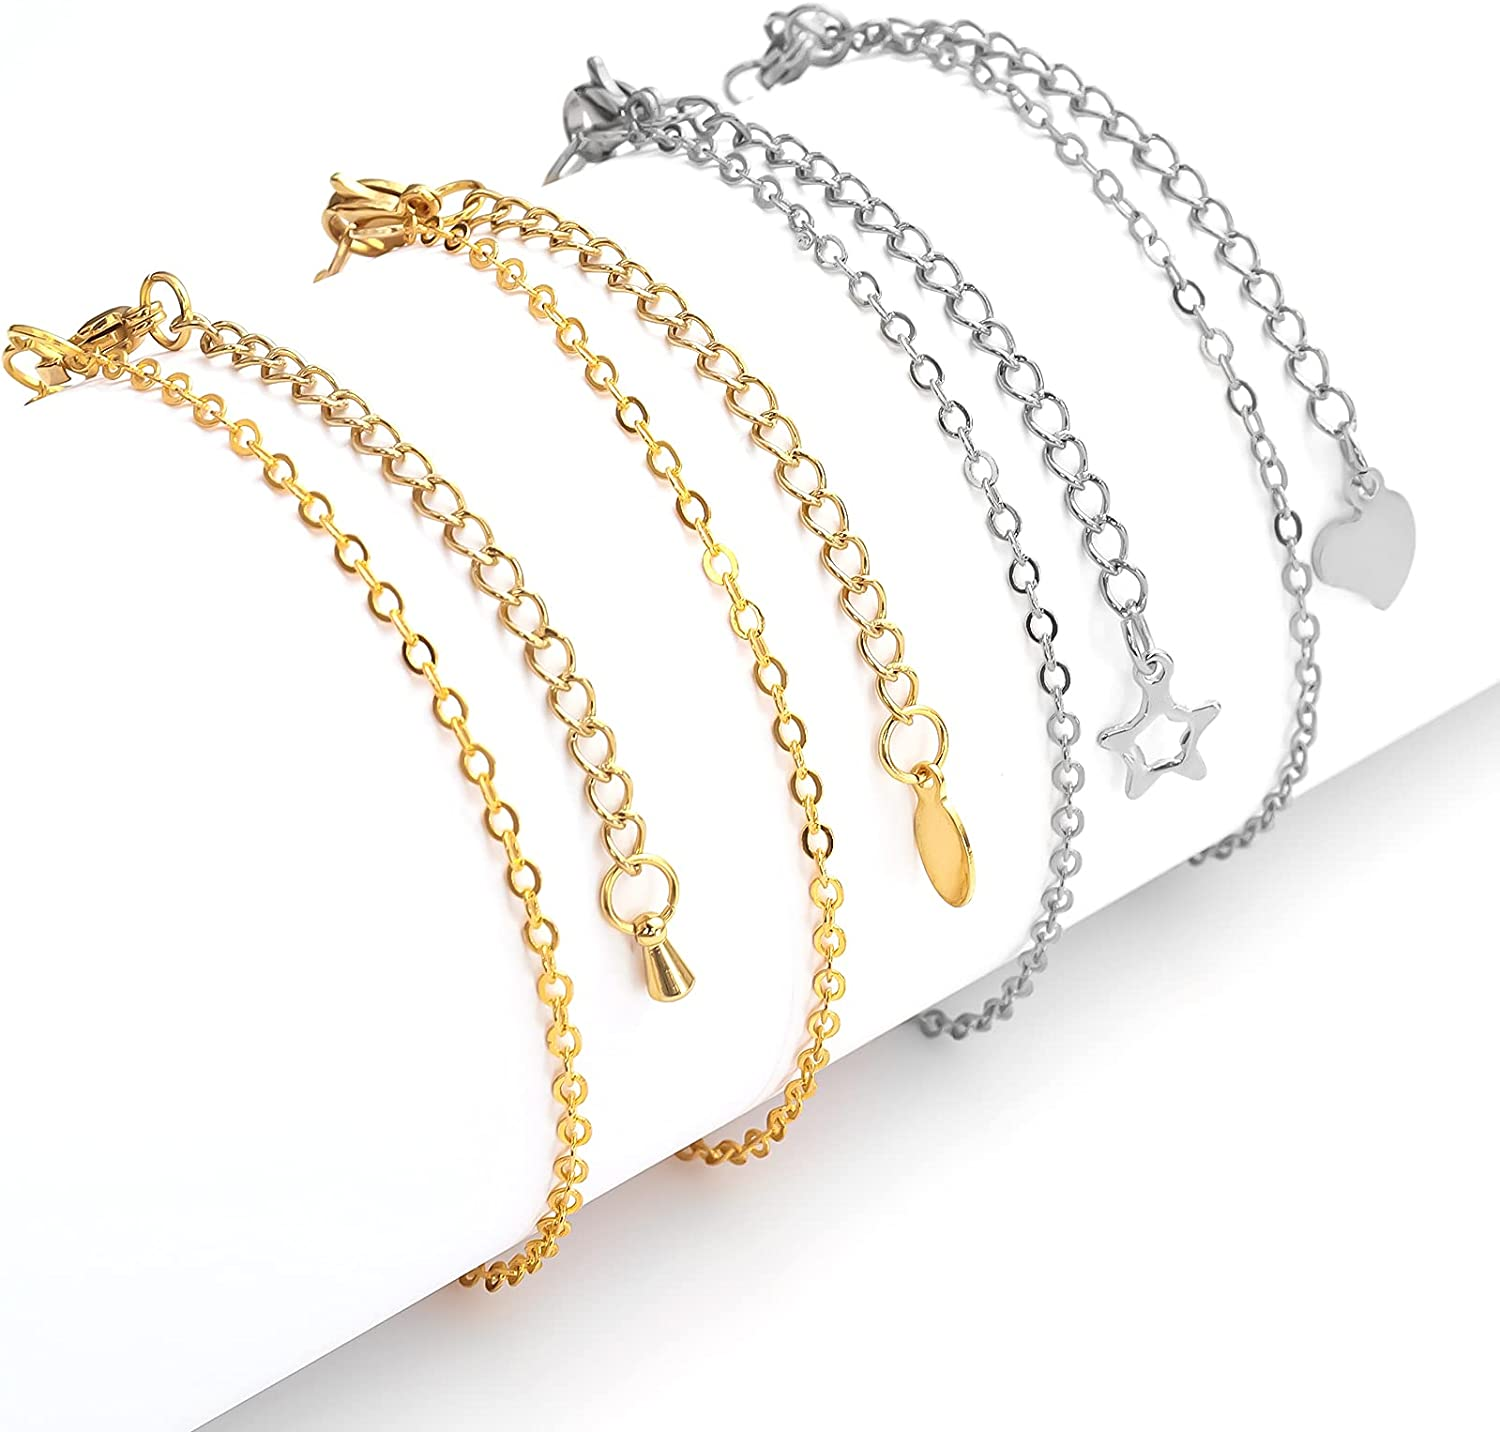 """Yumttero Necklace Extenders Bracelet Extenders Stainless Steel Jewelry Chain Extenders Set for Necklaces Bracelets Gold Plated/Steel Necklace Bracelet Extension Chain 2"""" 4 Different Design 8 Pcs/Set"""